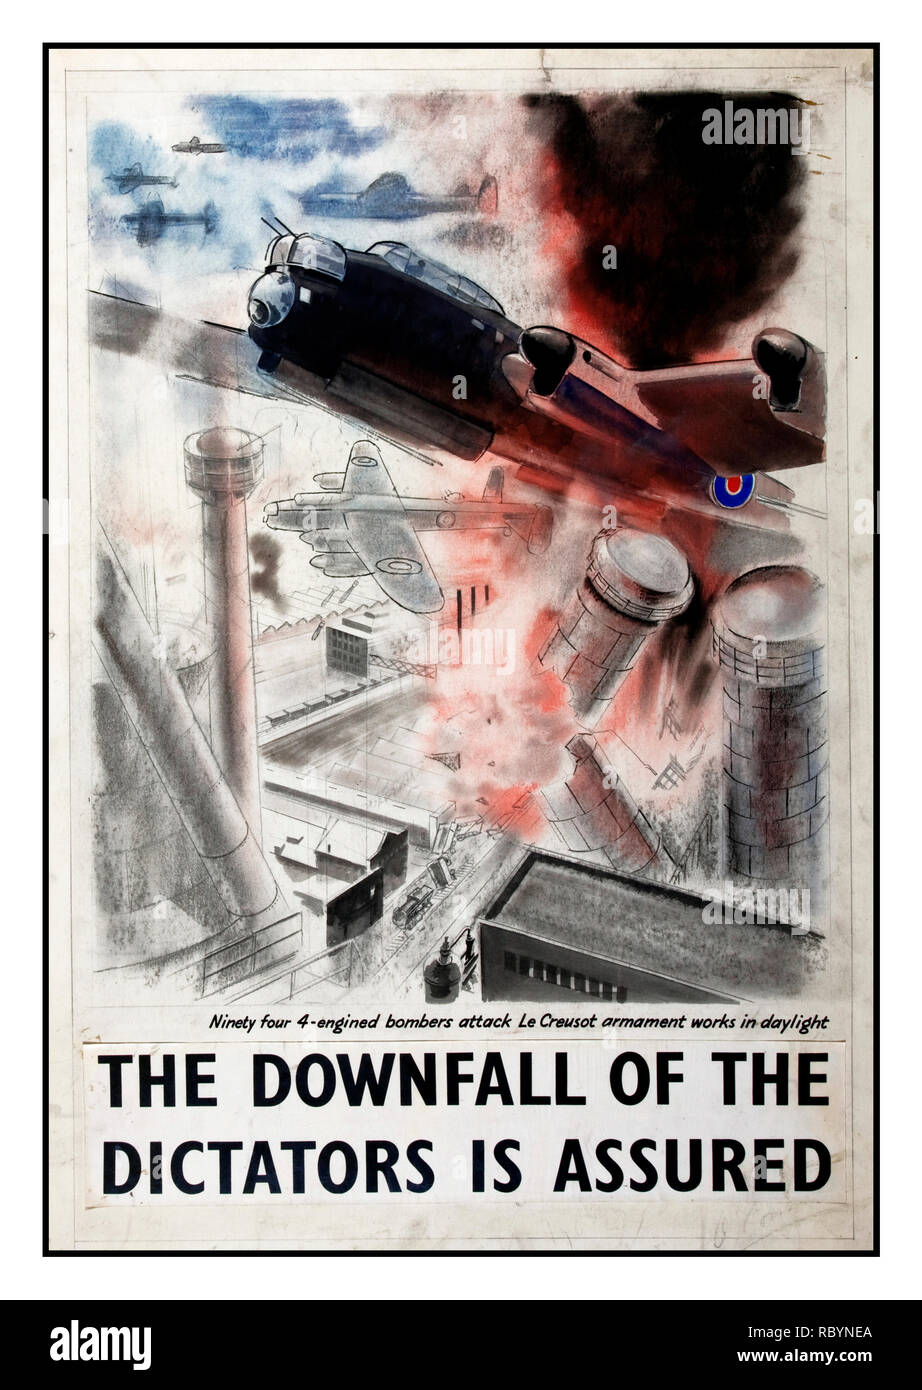 Archive WW2 Propaganda Original Artwork Poster UK 1940's  'The Downfall of The Dictators is Assured' Illustrating an RAF Lancaster Bomber Aircraft successfully bombing a World War 2 Nazi Germany industrial complex 'Le Creusot' armament works in broad daylight with 94 four-engined bombers - Stock Image